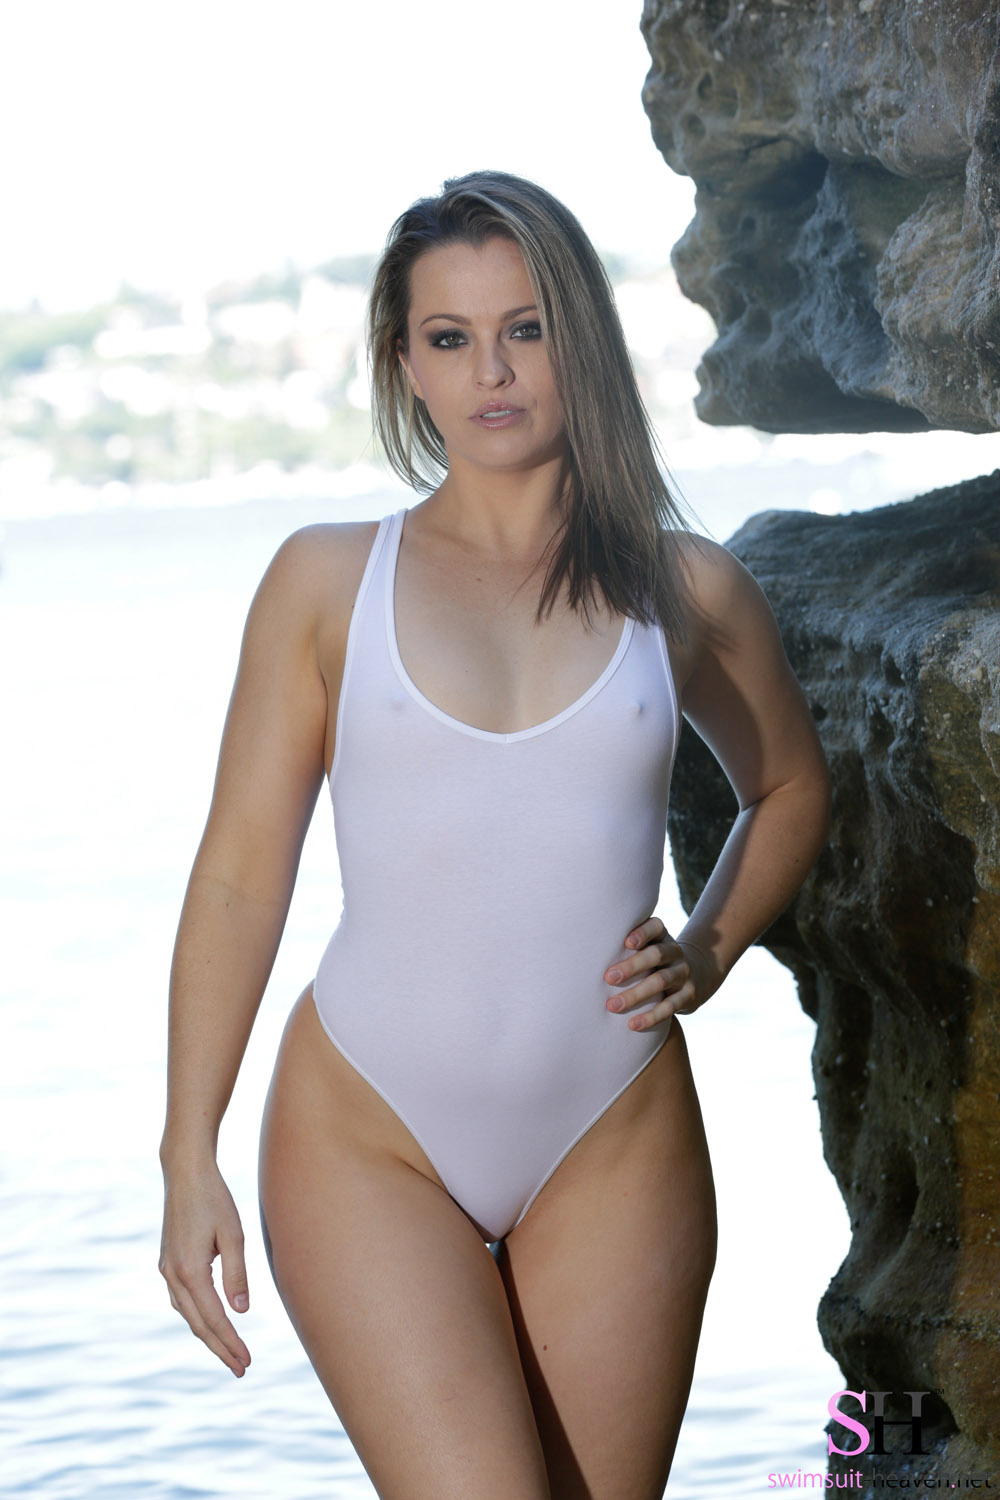 pussy one piece bathing suit